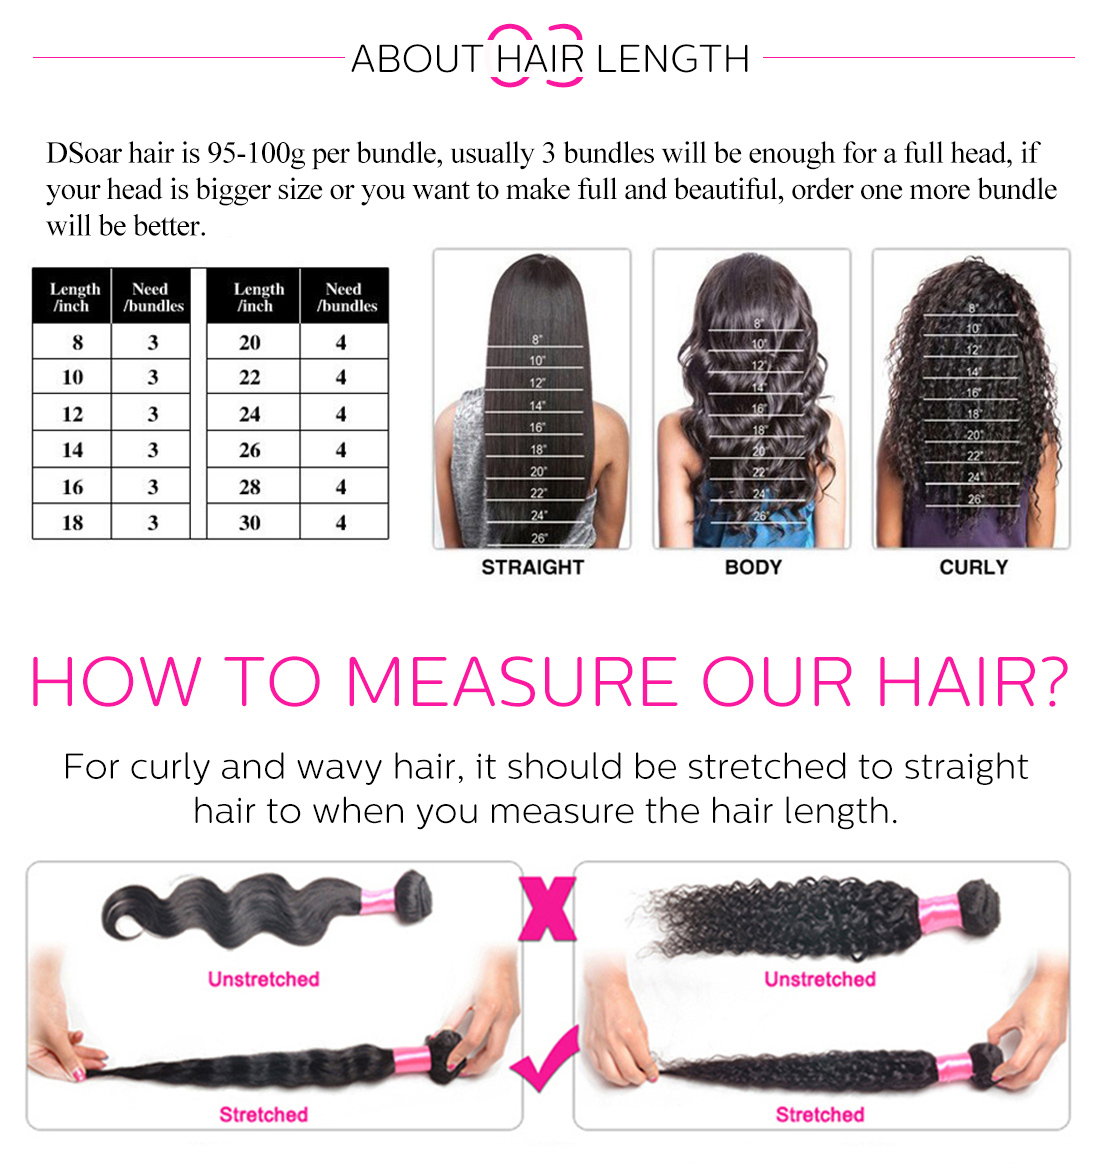 613 hair bundles